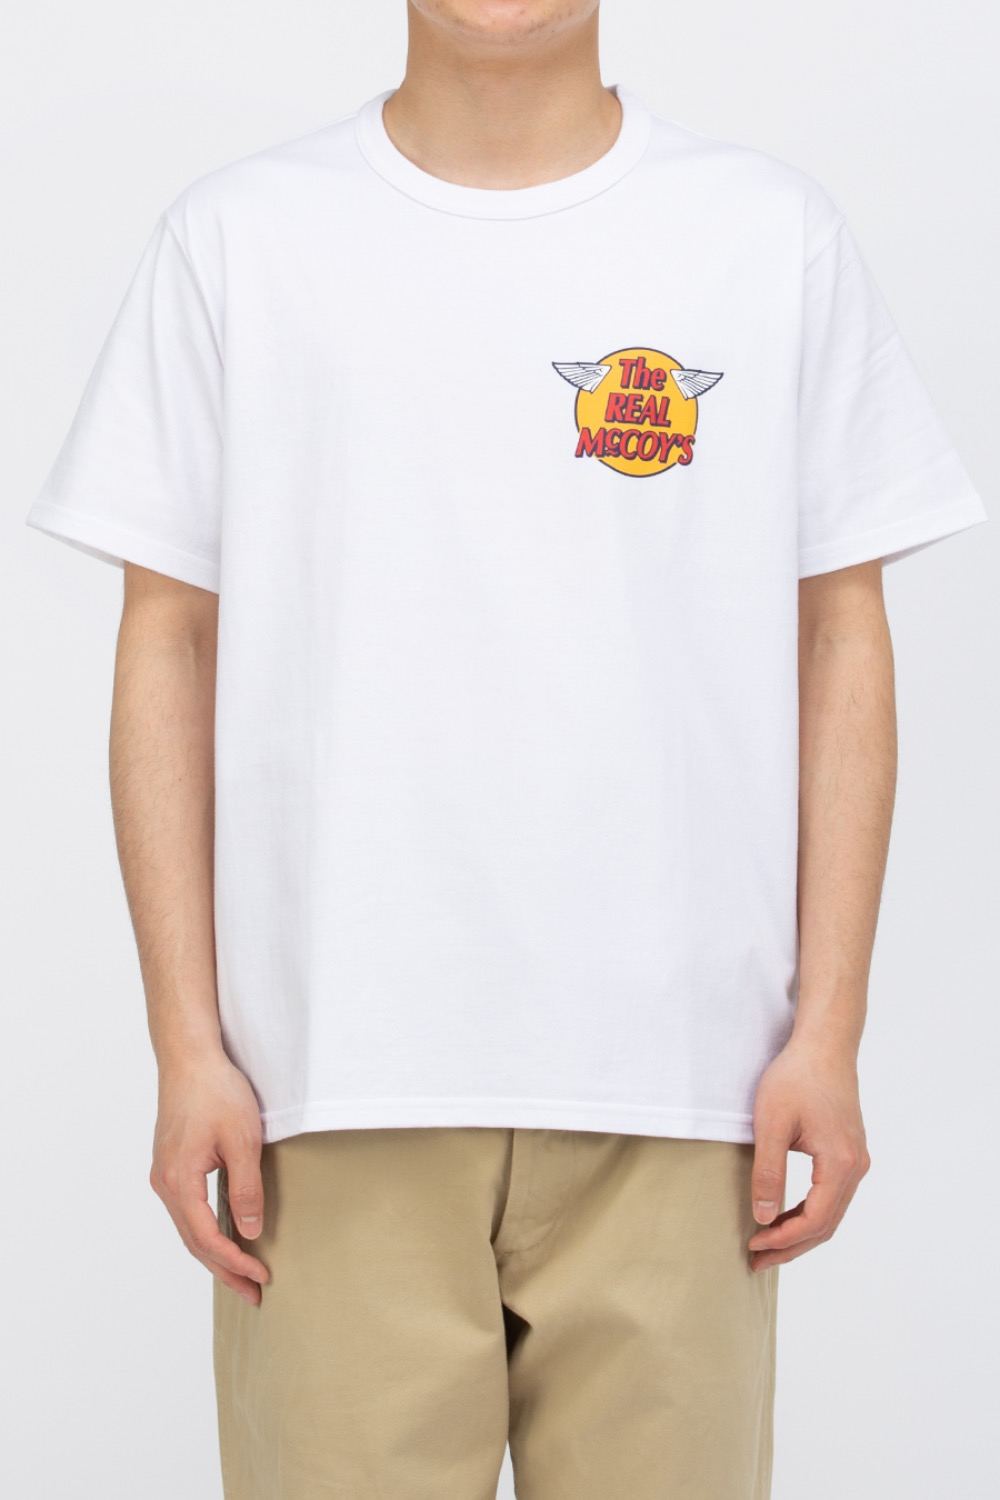 THE REAL MCCOY'S LOGO TEE S/S WHITE